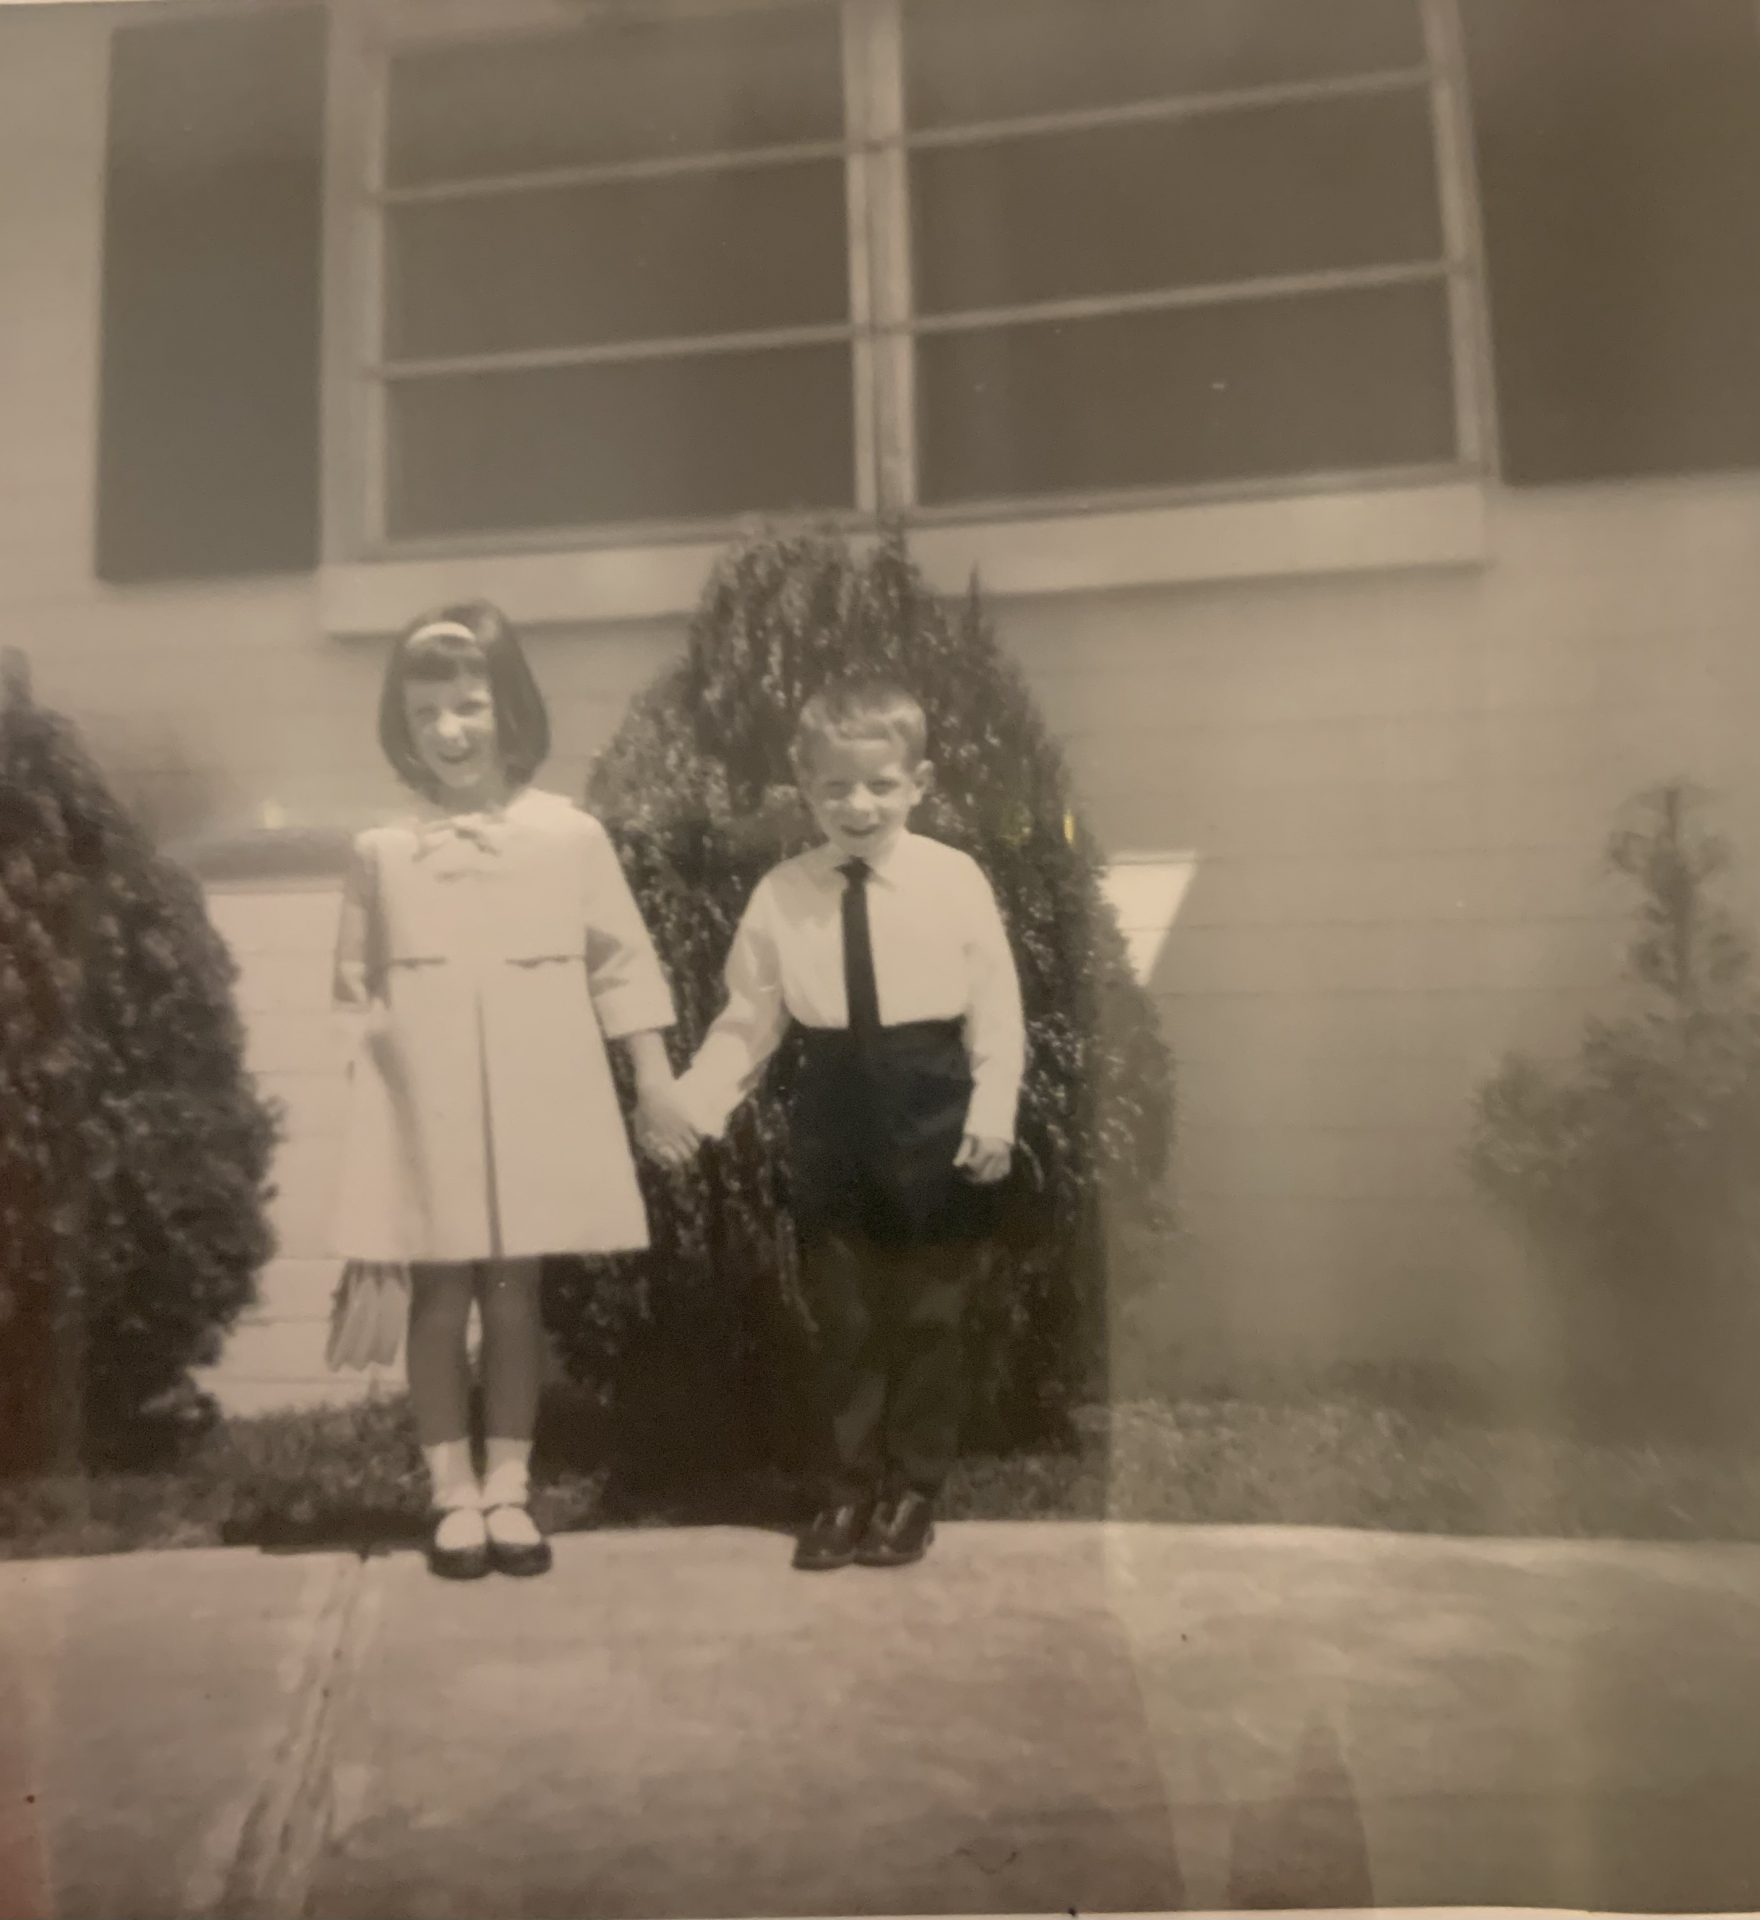 Richard, my brother and I when we were young children